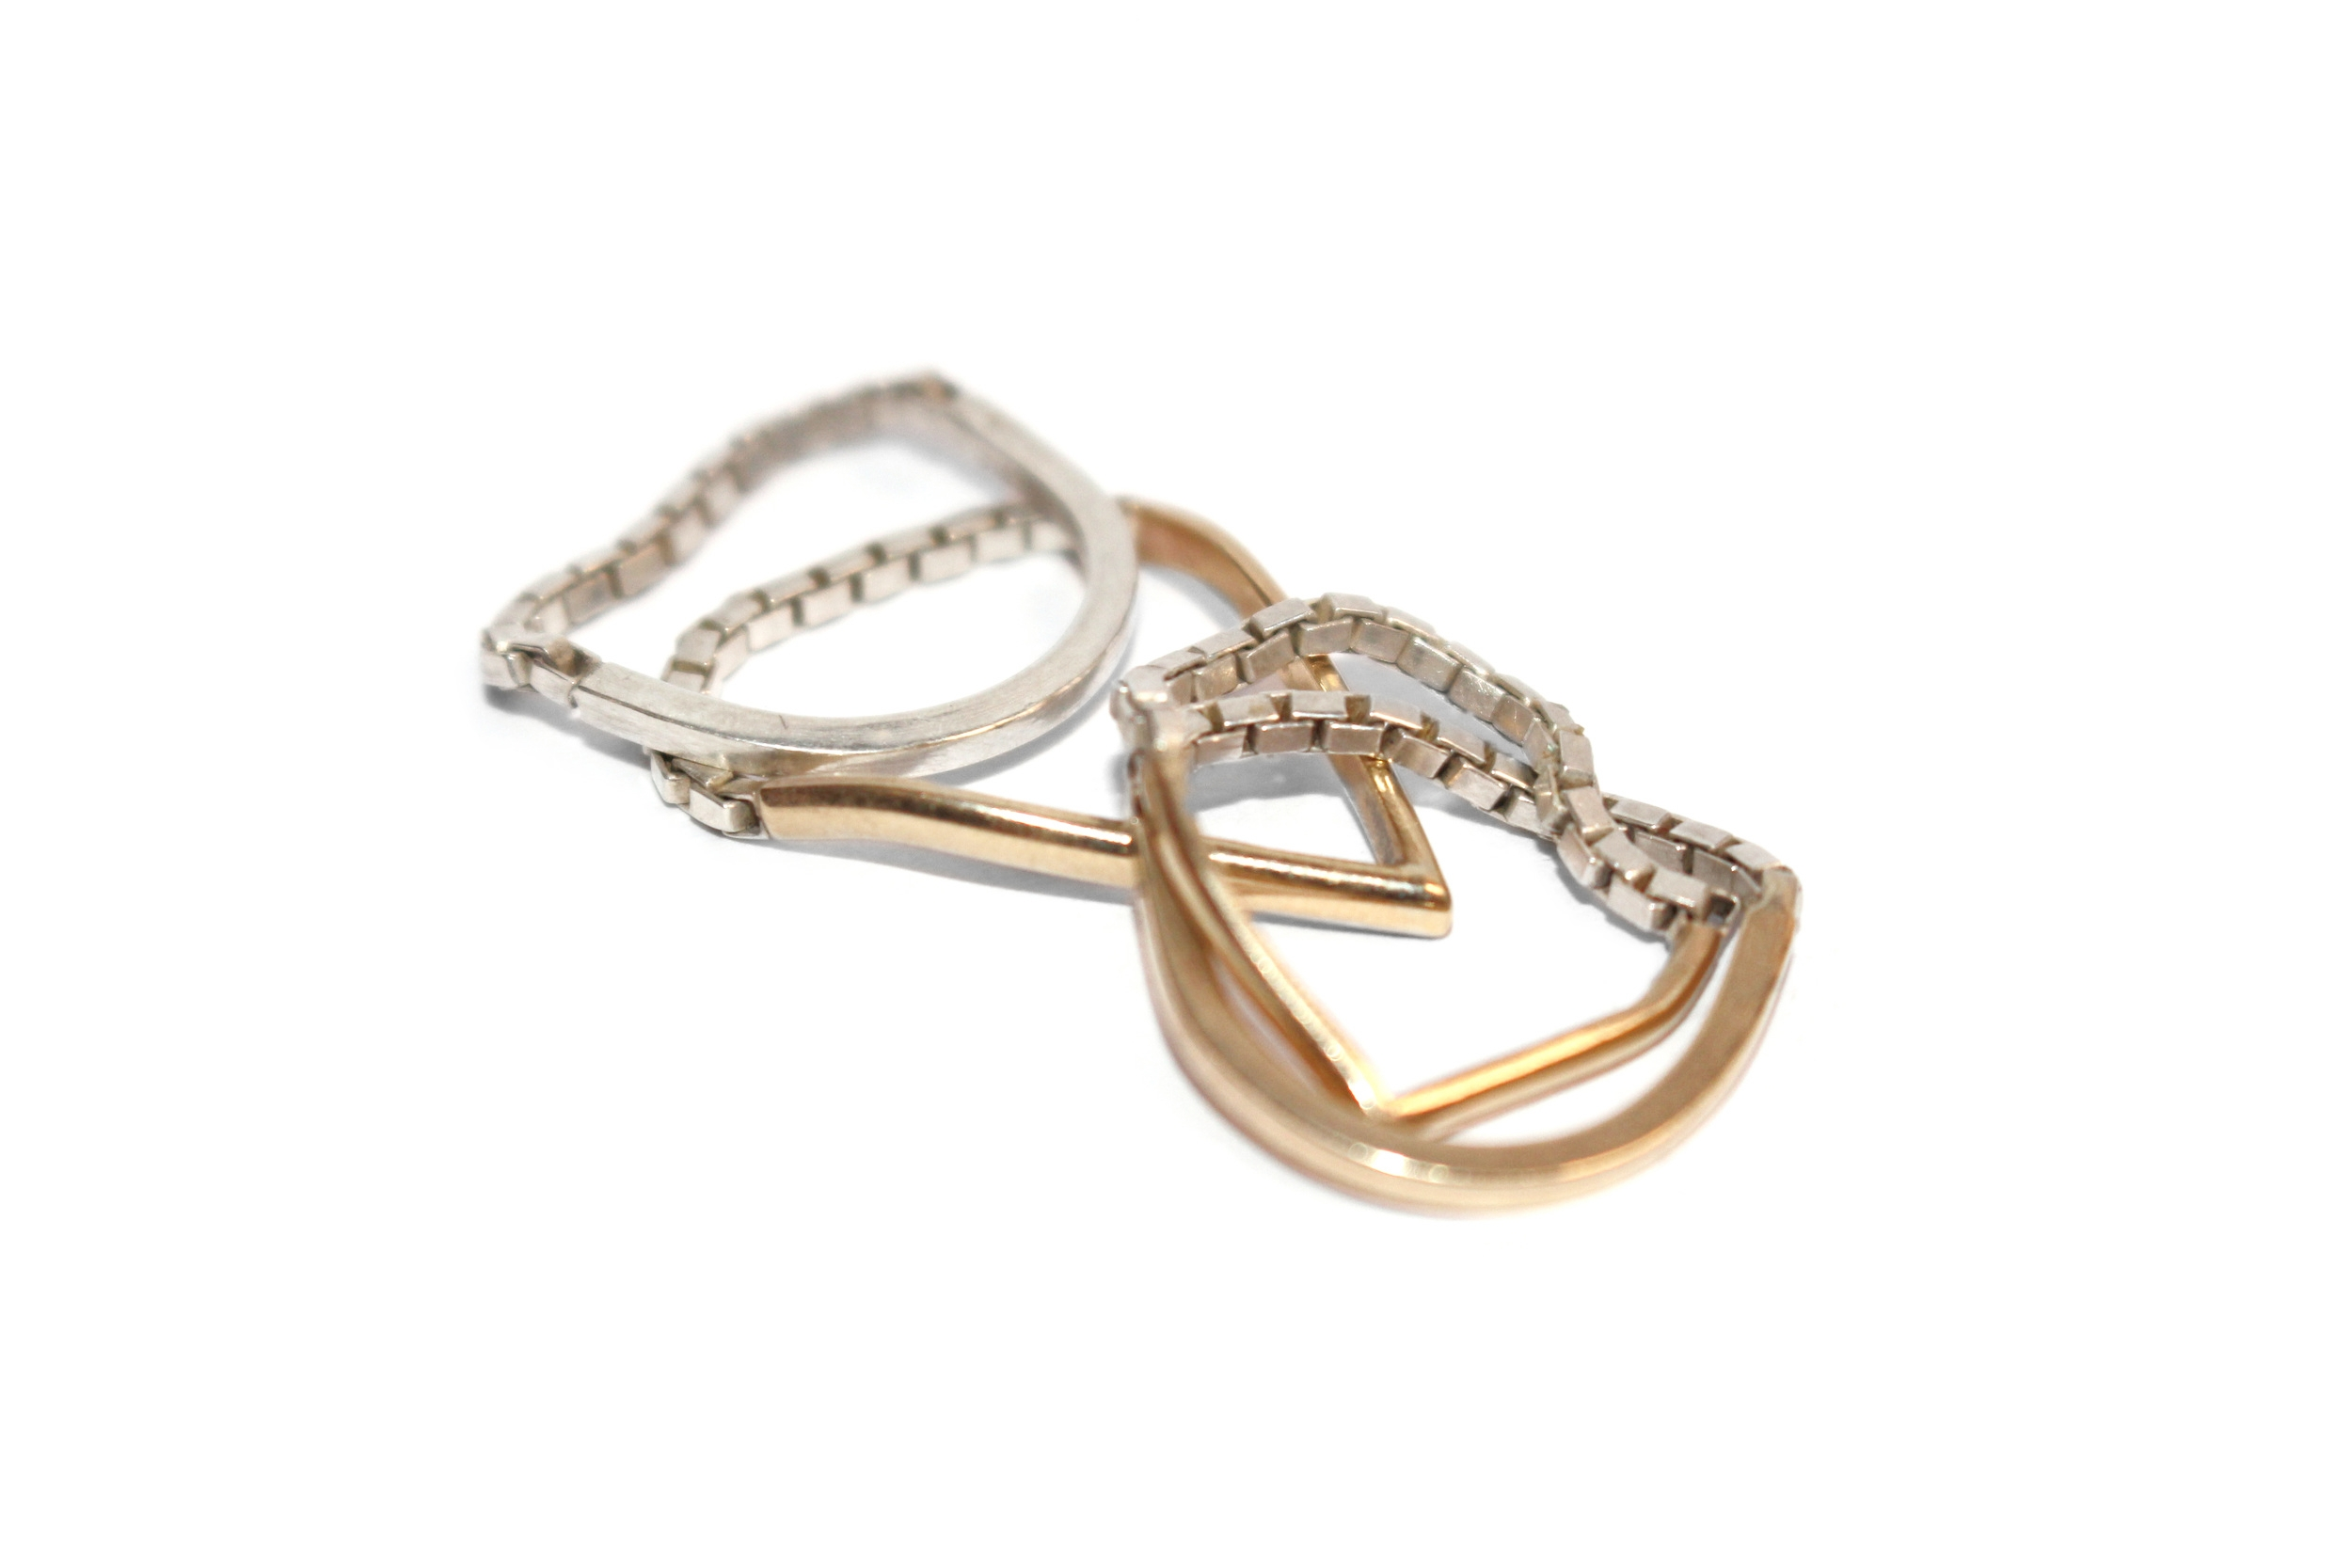 CHAIN RINGS 925 SILVER & 9K YELLOW